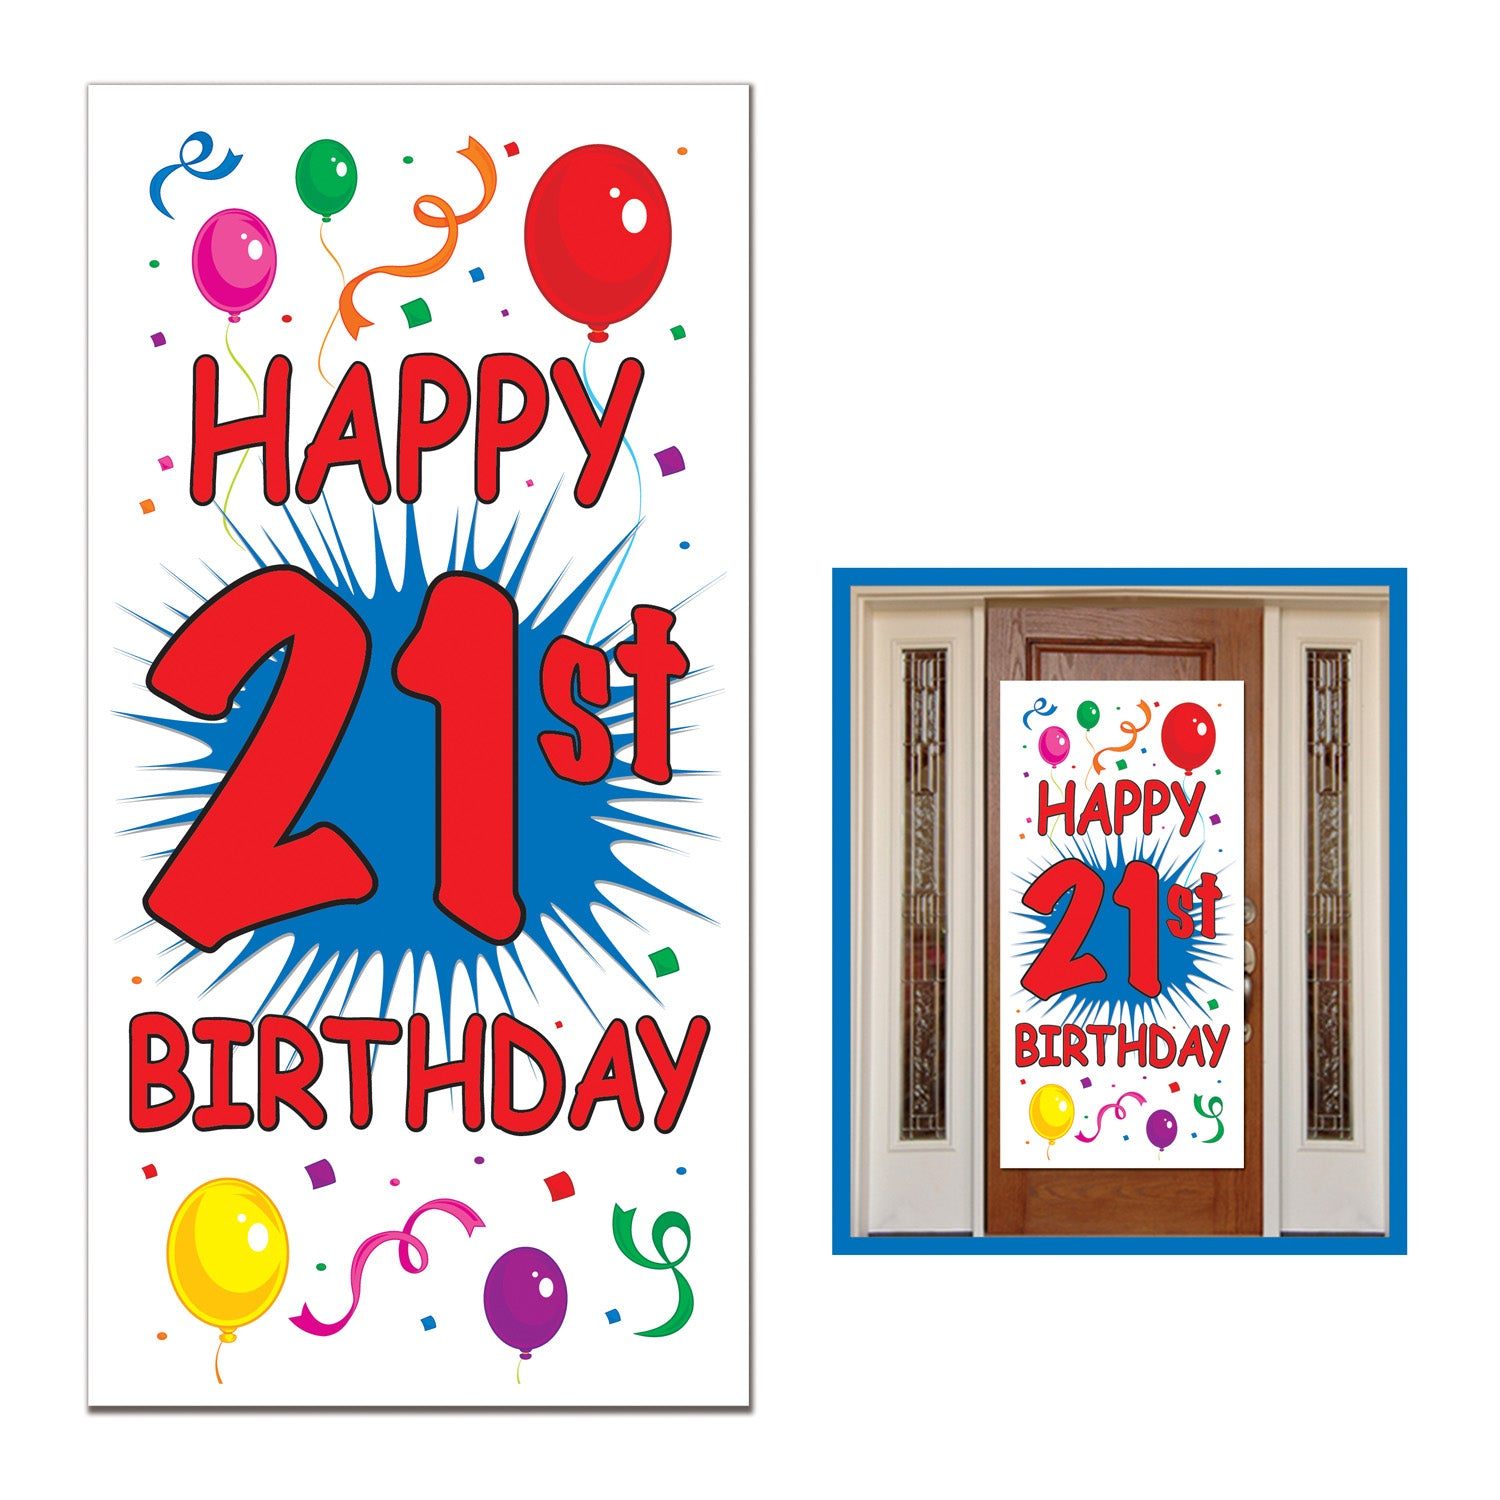 21st Birthday Door Cover by Beistle - 21st Birthday Theme Decorations